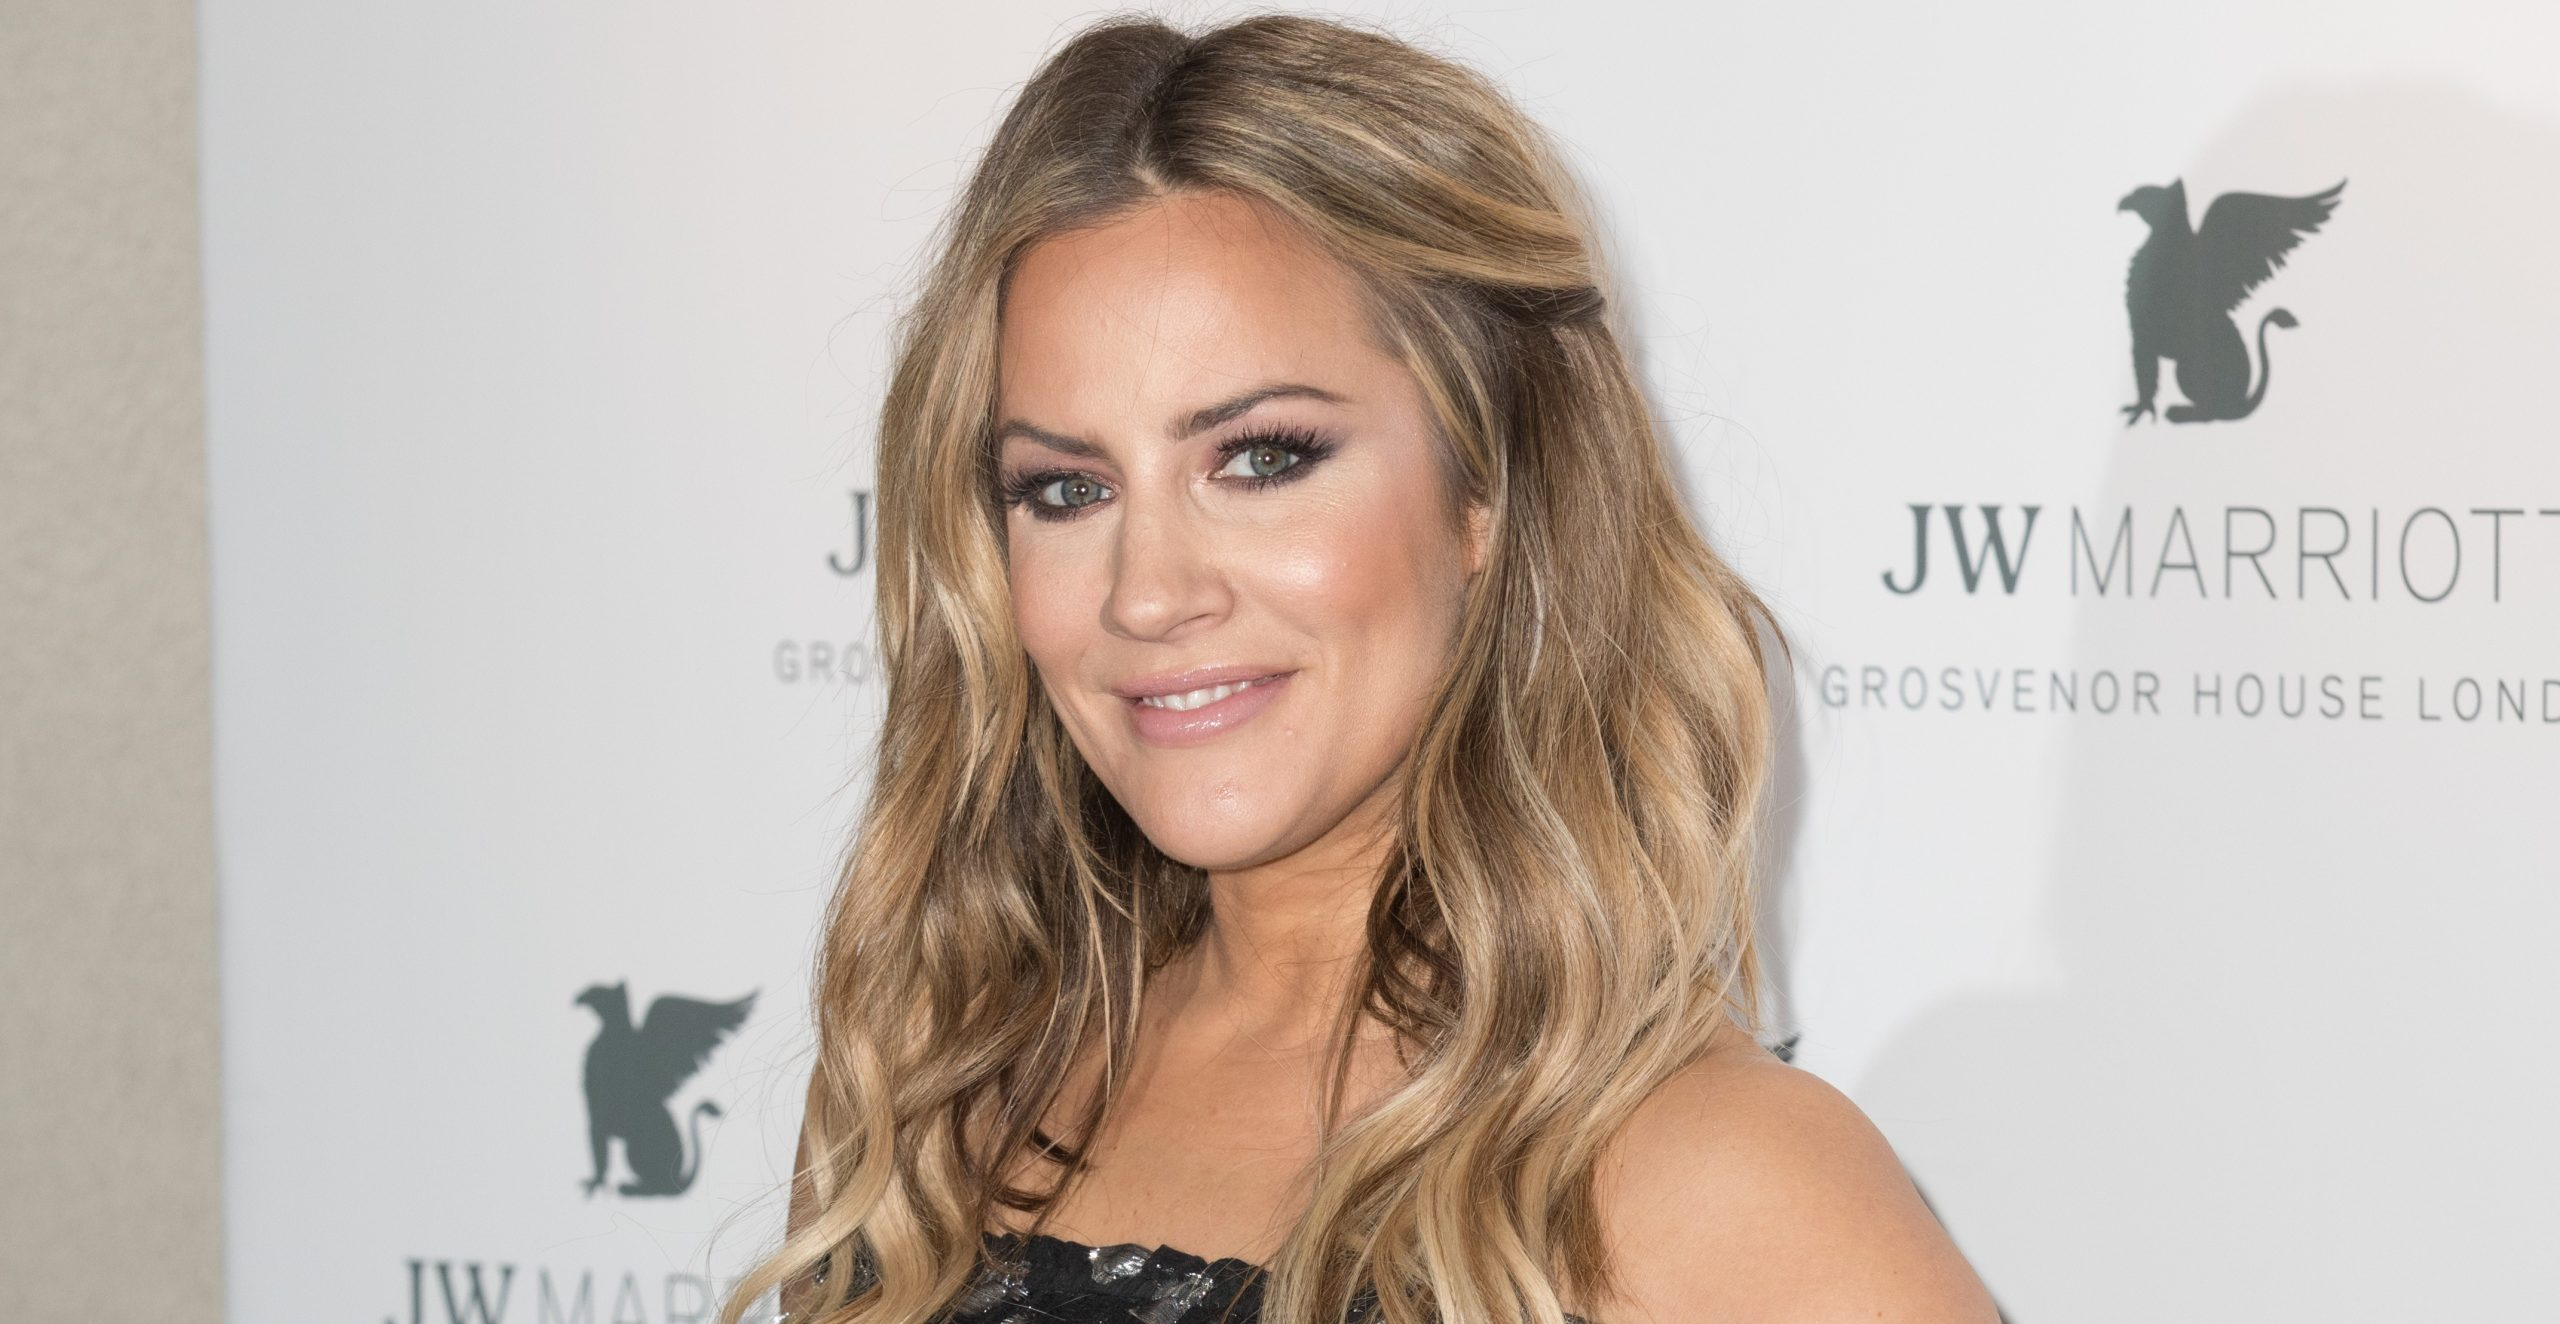 Love Island to pay tribute to Caroline Flack after tragic death